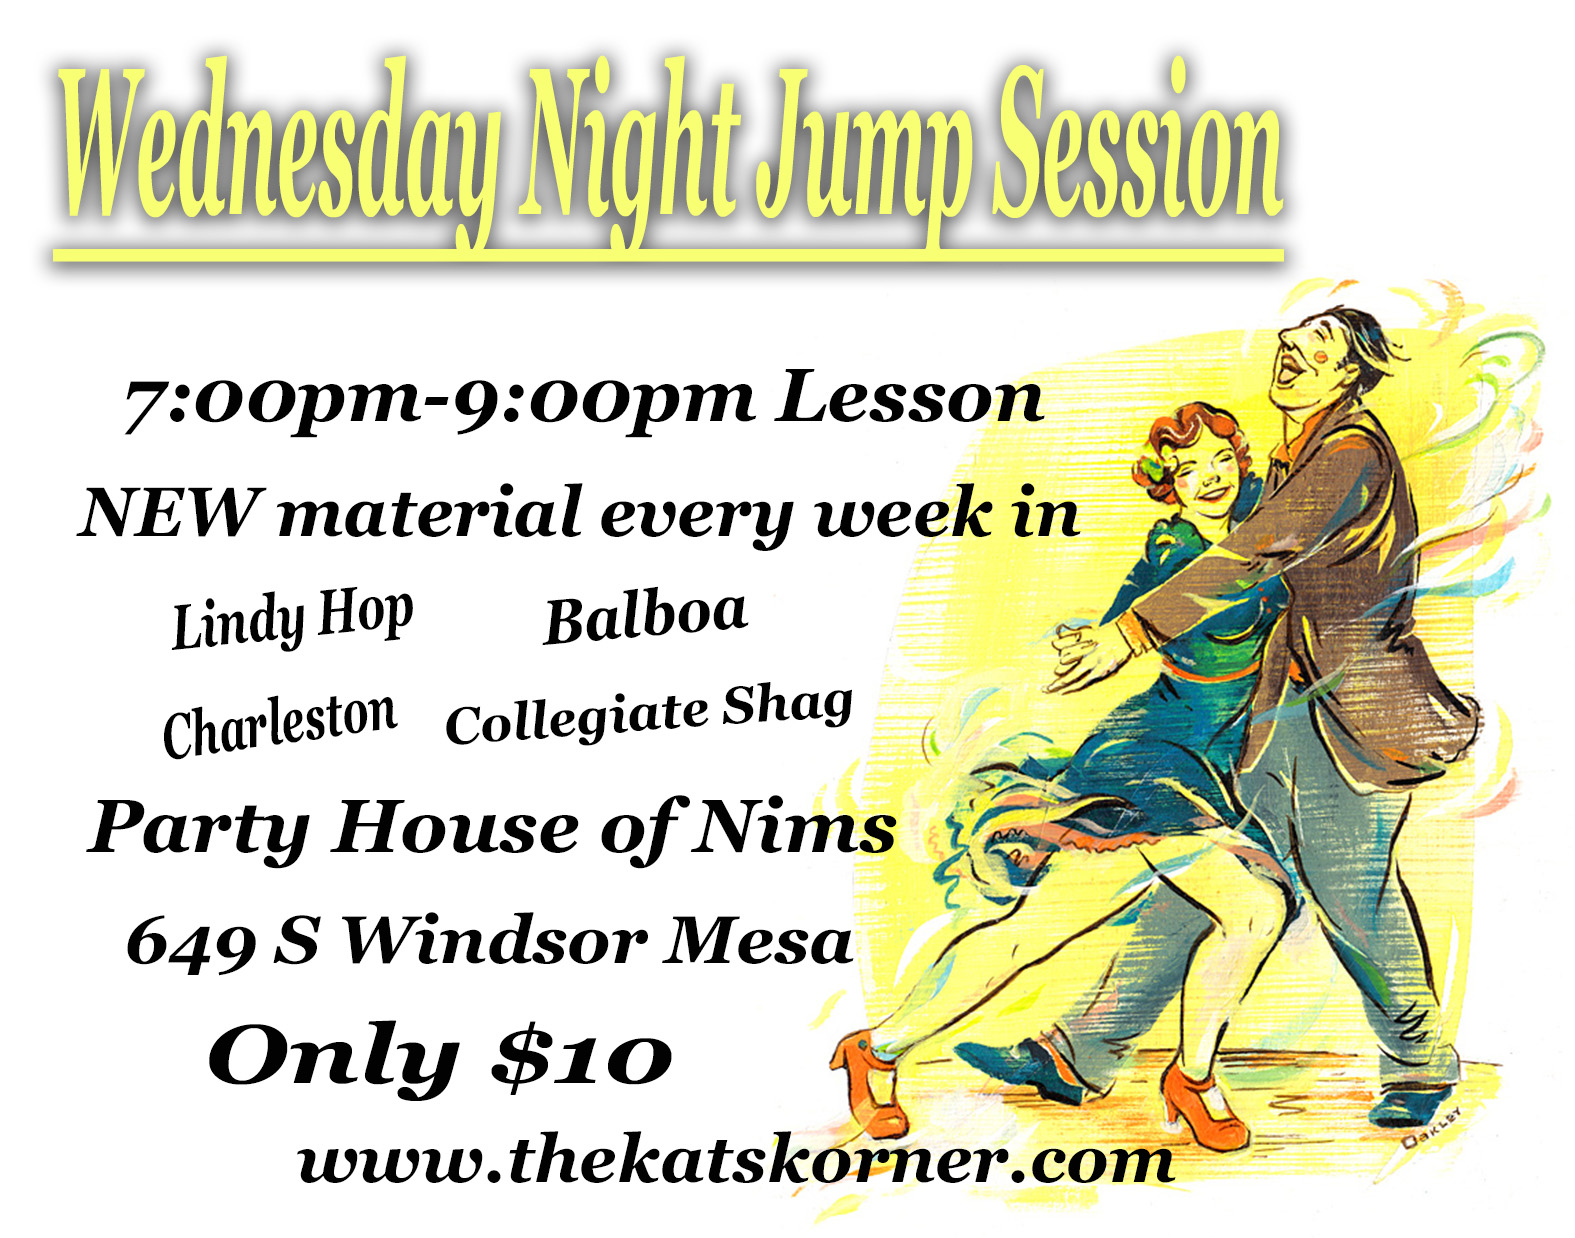 Wednesday Night Jump Sessions